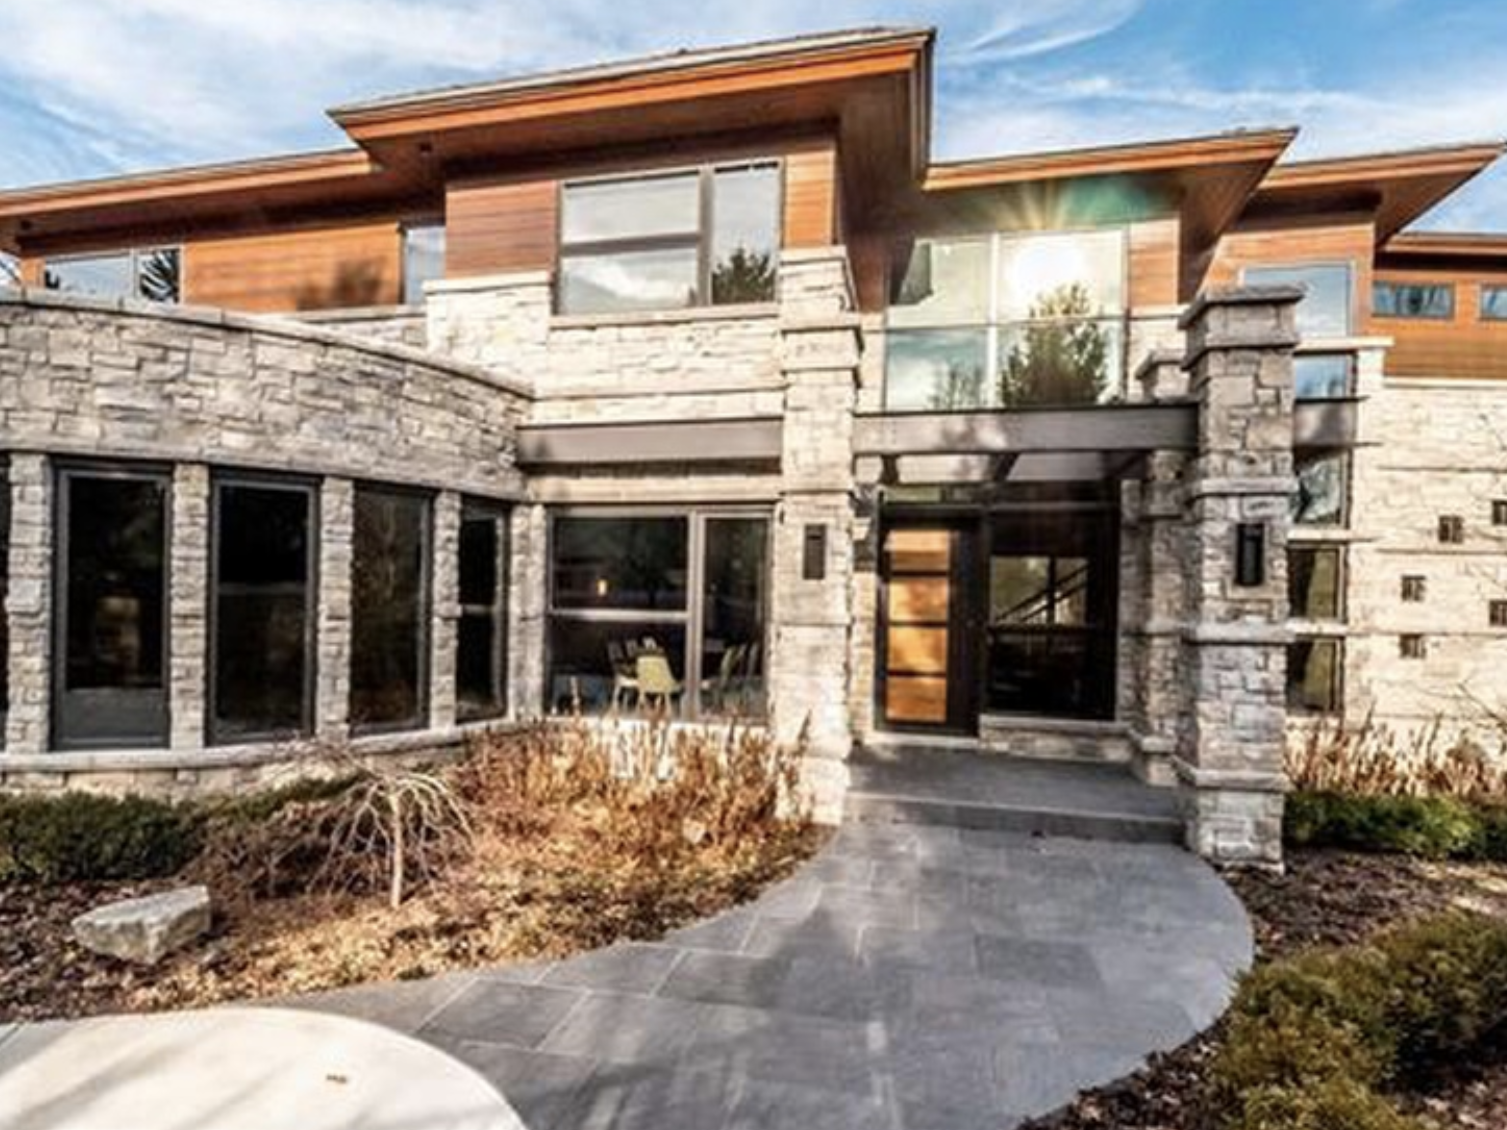 The contemporary-style, four bedroom, 5,214 square-foot home is listed for $4.9 million.